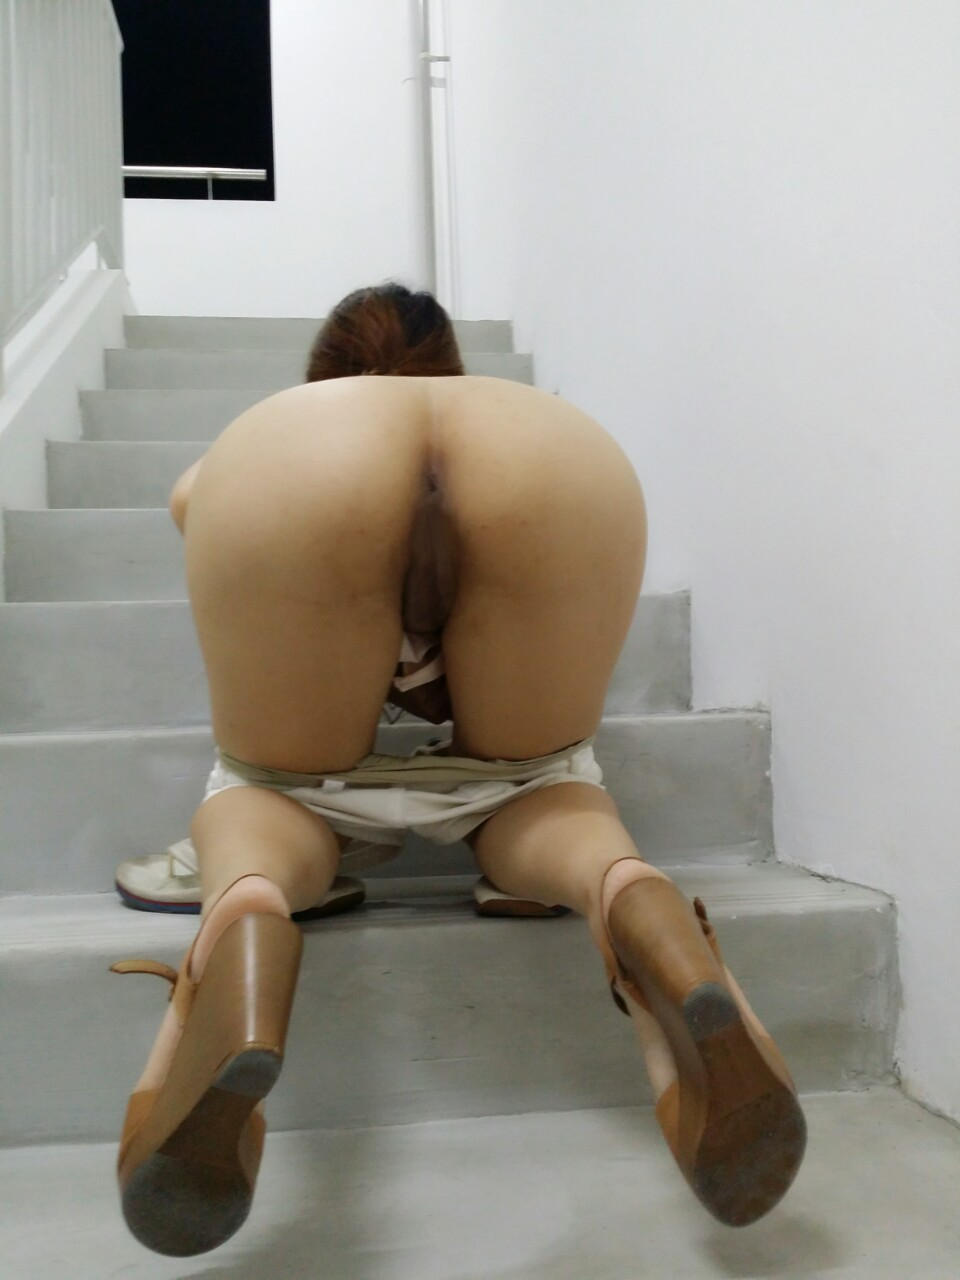 Amateur video curvy woman from india and bf - 3 part 6